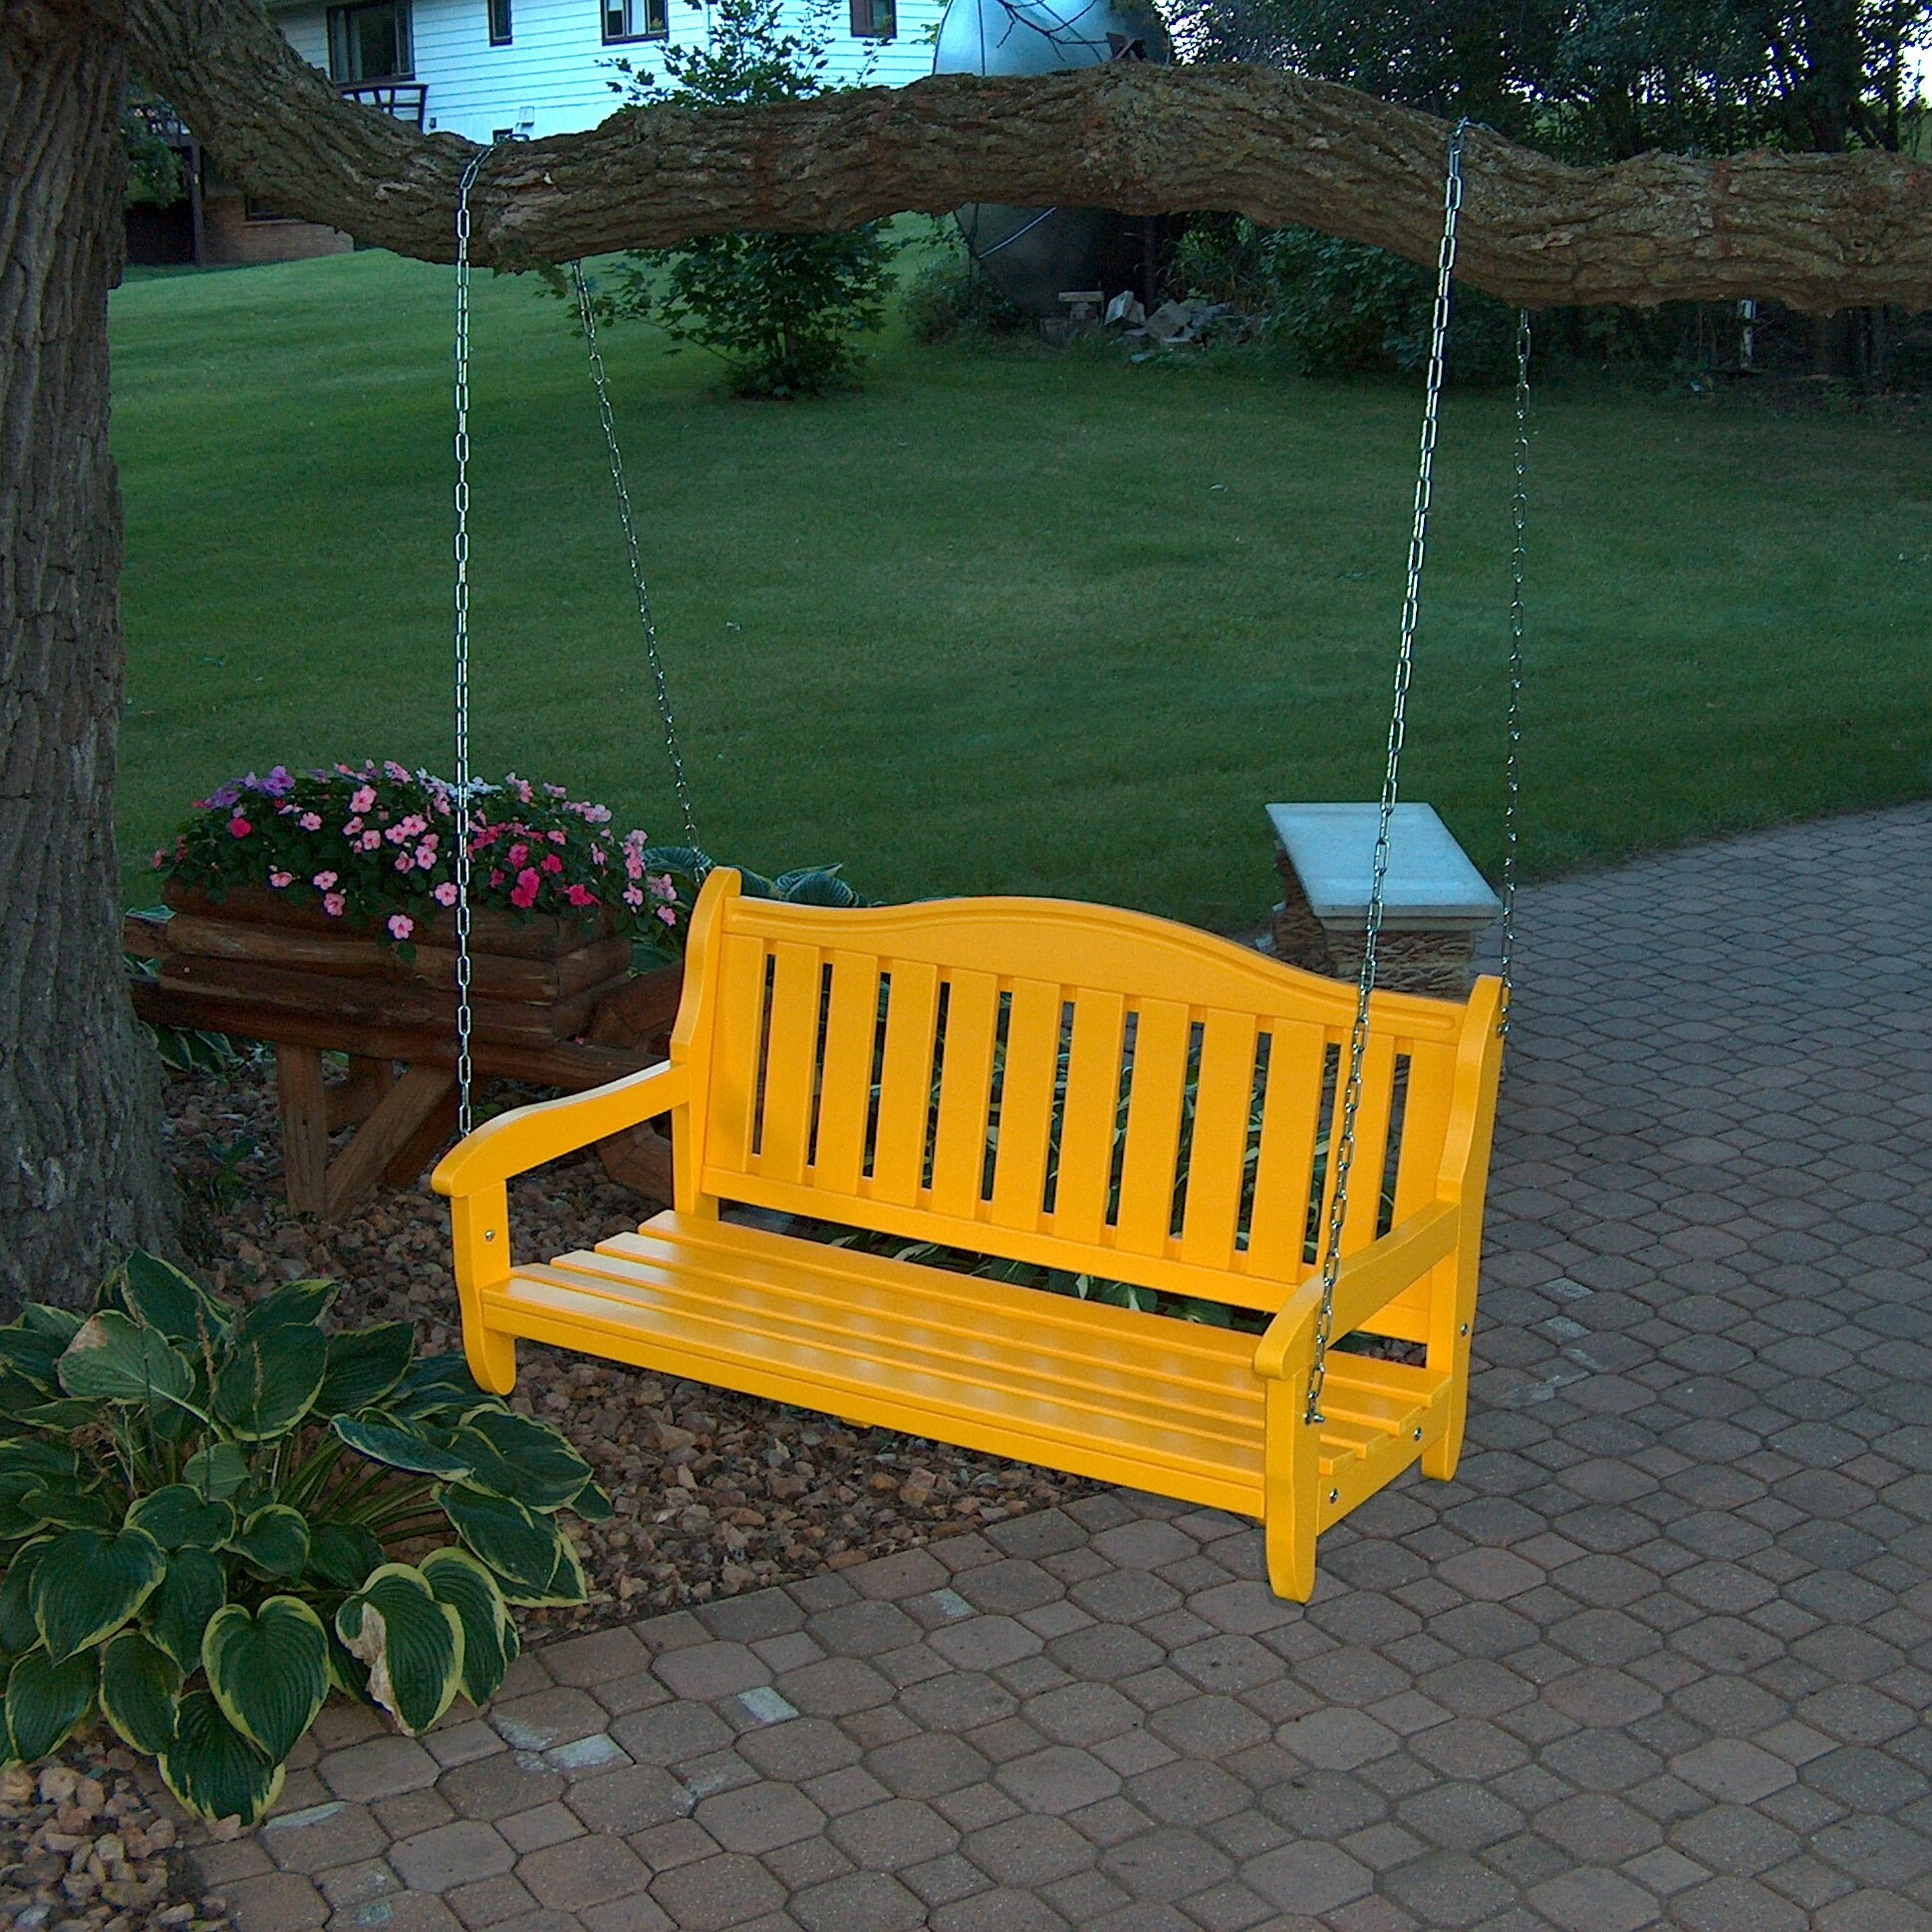 Prairie leisure design garden porch swing reviews wayfair for Prairie style garden design